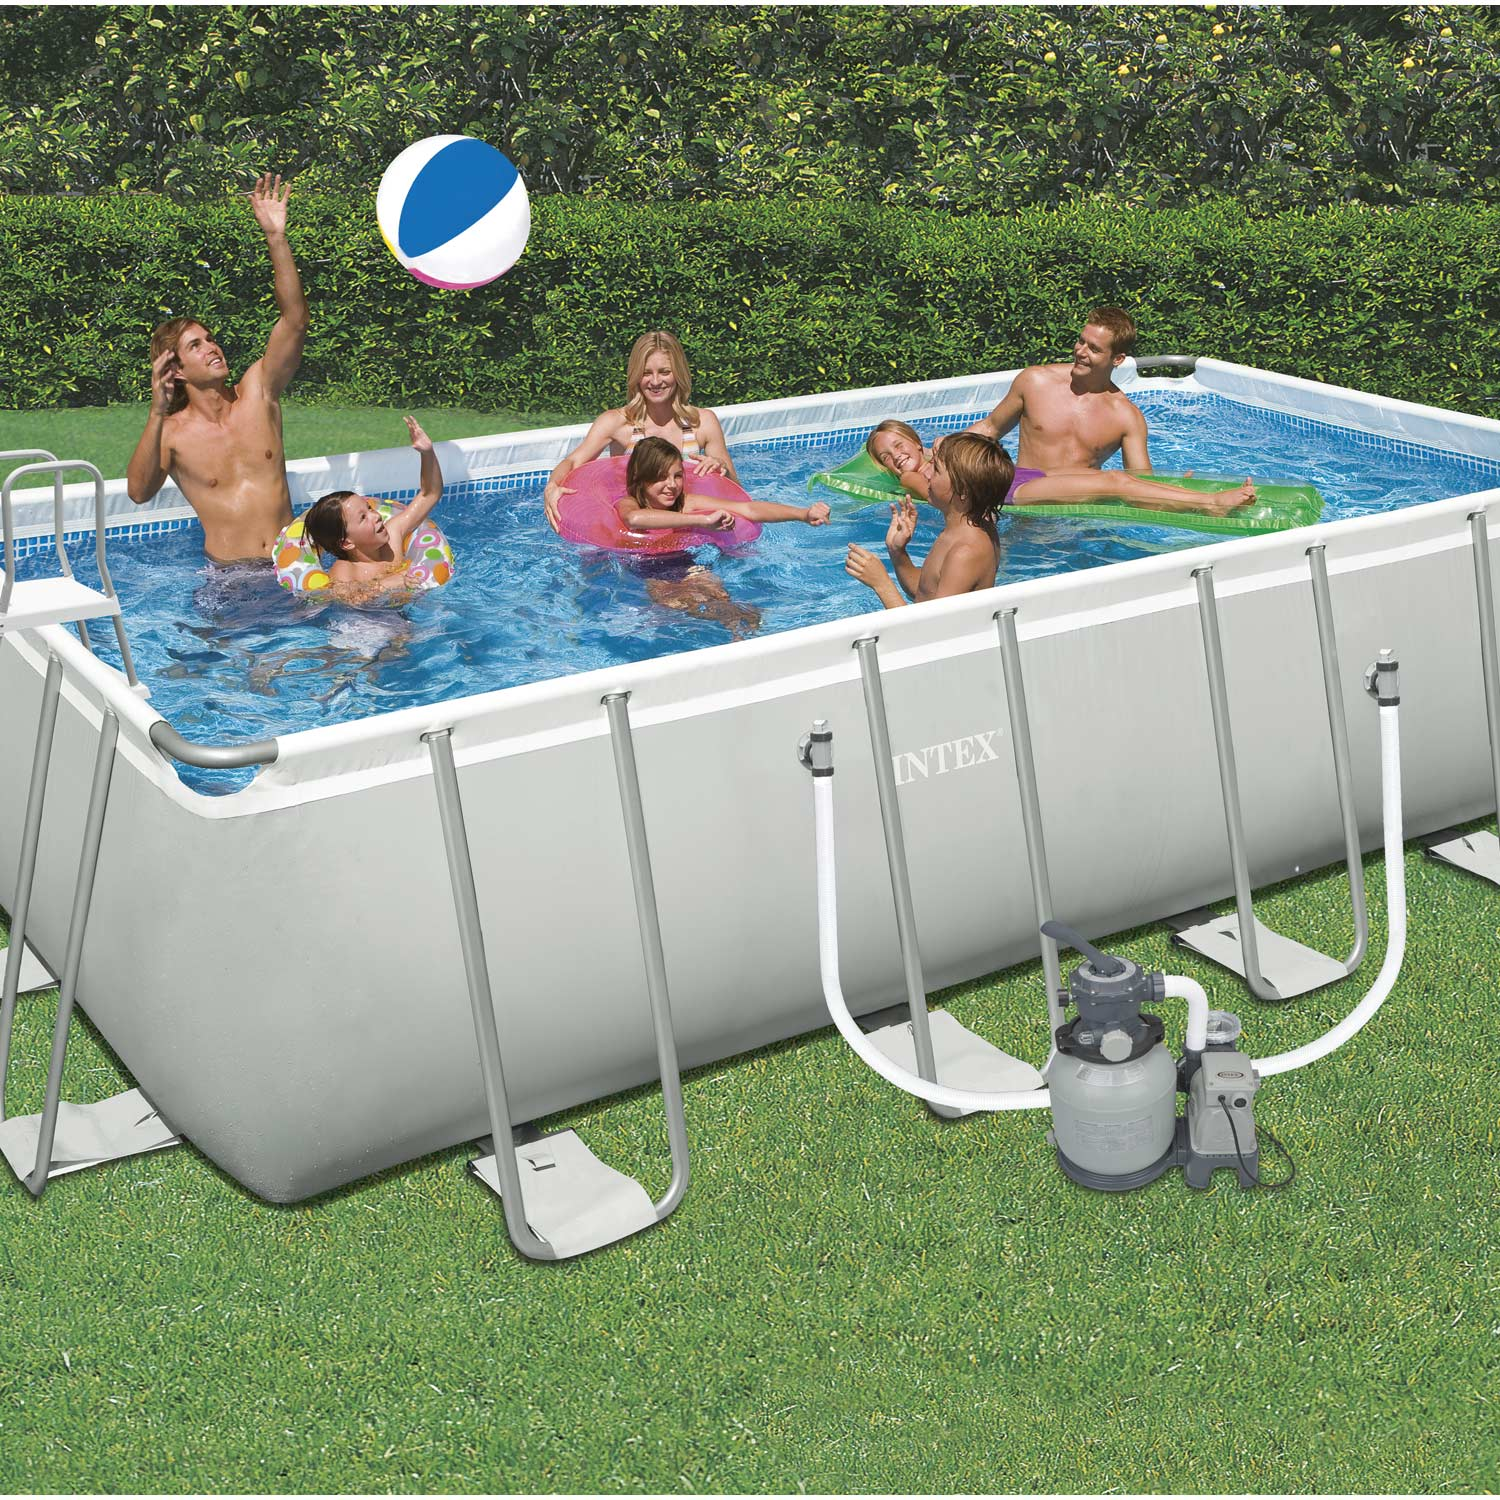 Piscine hors sol autoportante tubulaire intex l x l for Piscine hors sol com